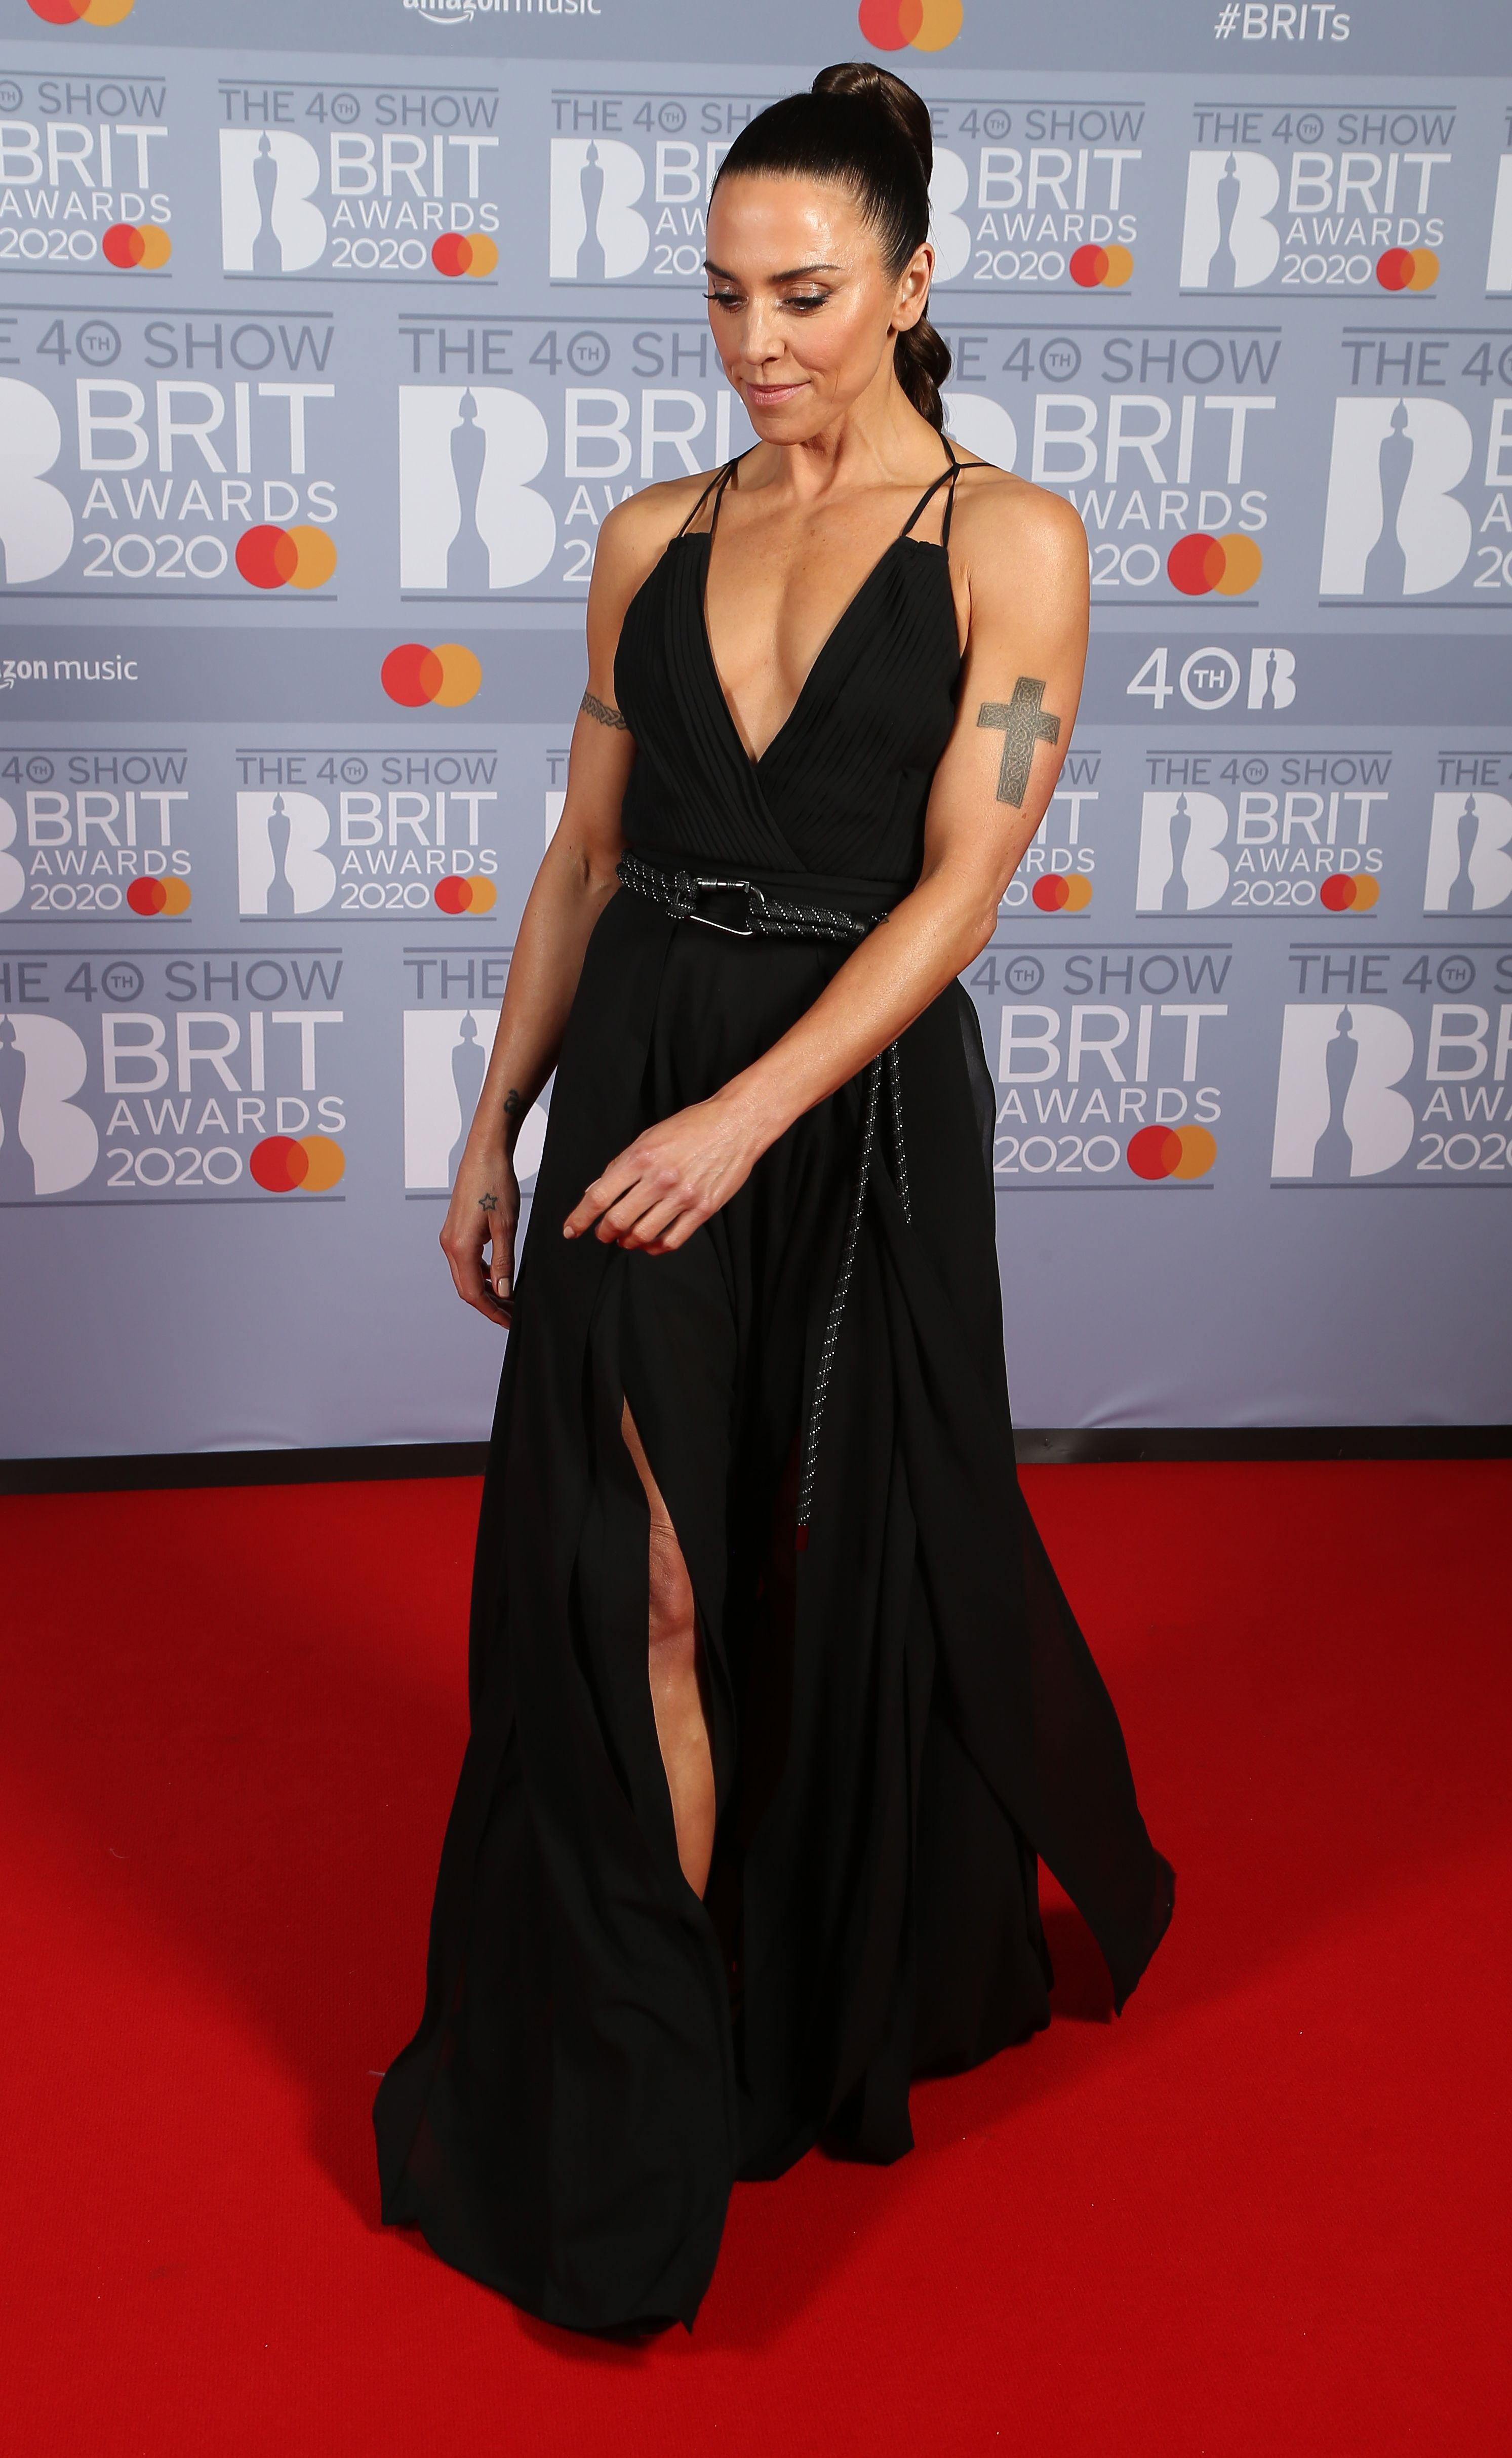 Melanie Chisholm at The BRIT Awards 2020 in London